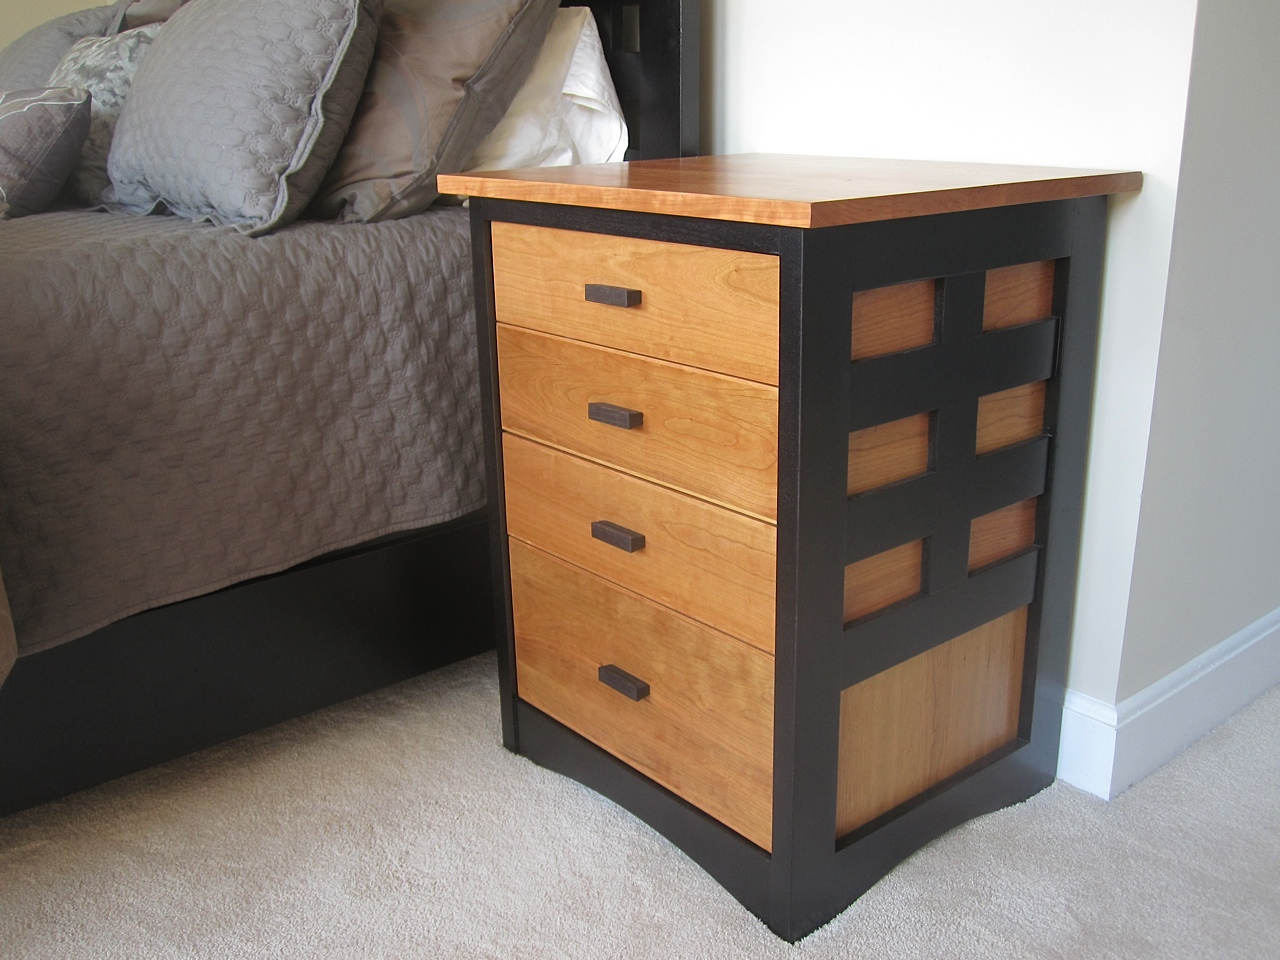 custom bedroom furniture, handmade bedroom furniture | Joseph Schwarte